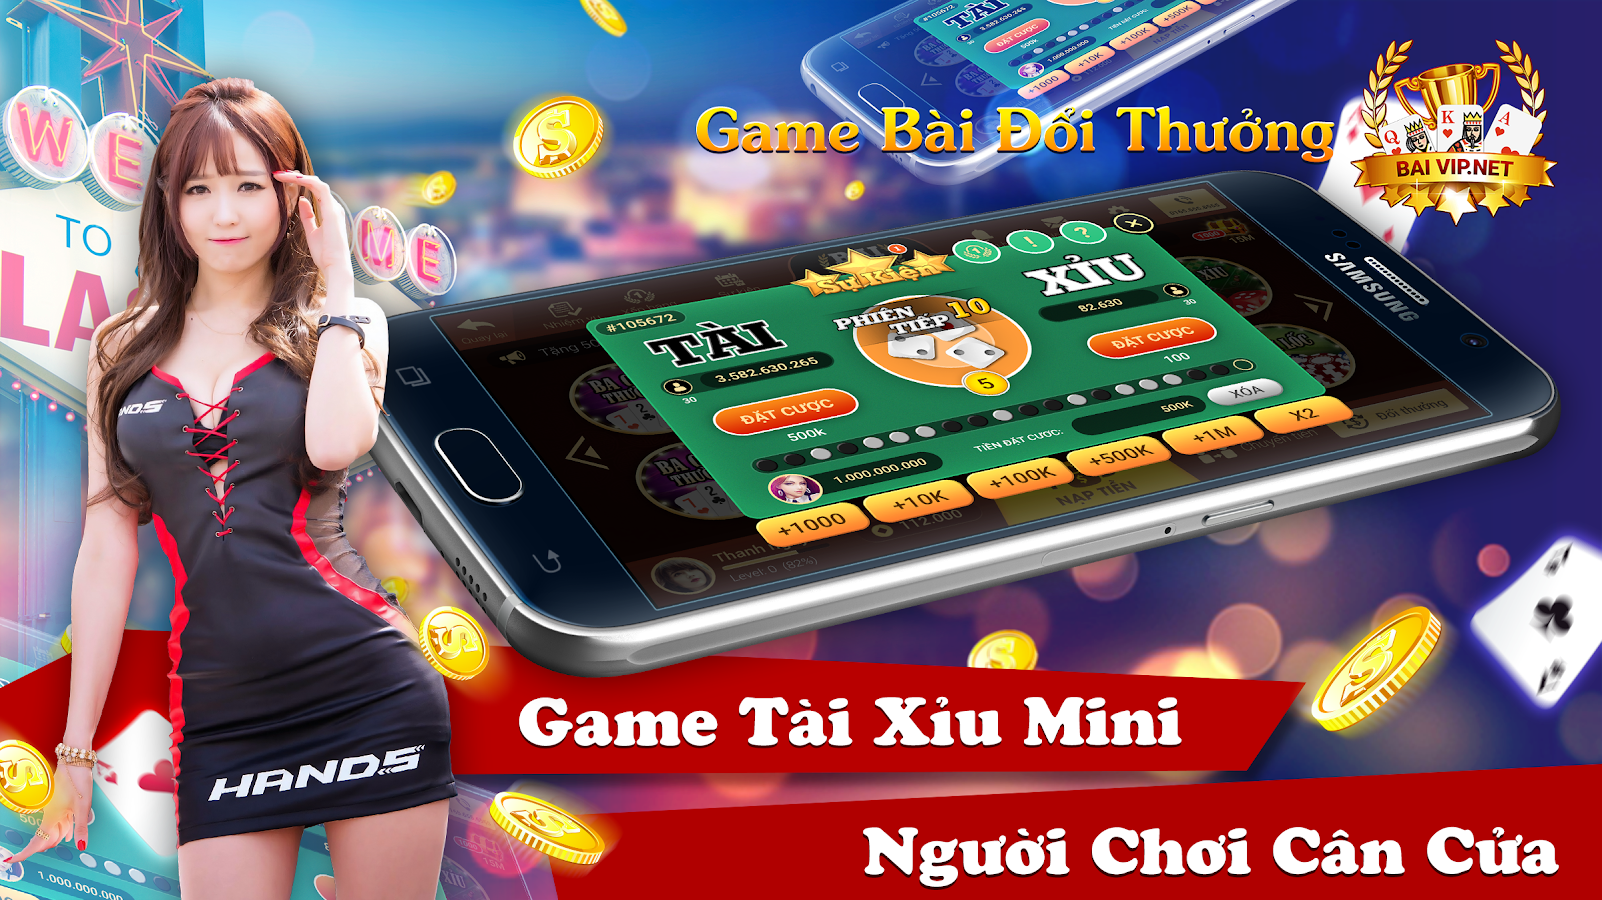 Game Bài Vip Online Screenshot 8